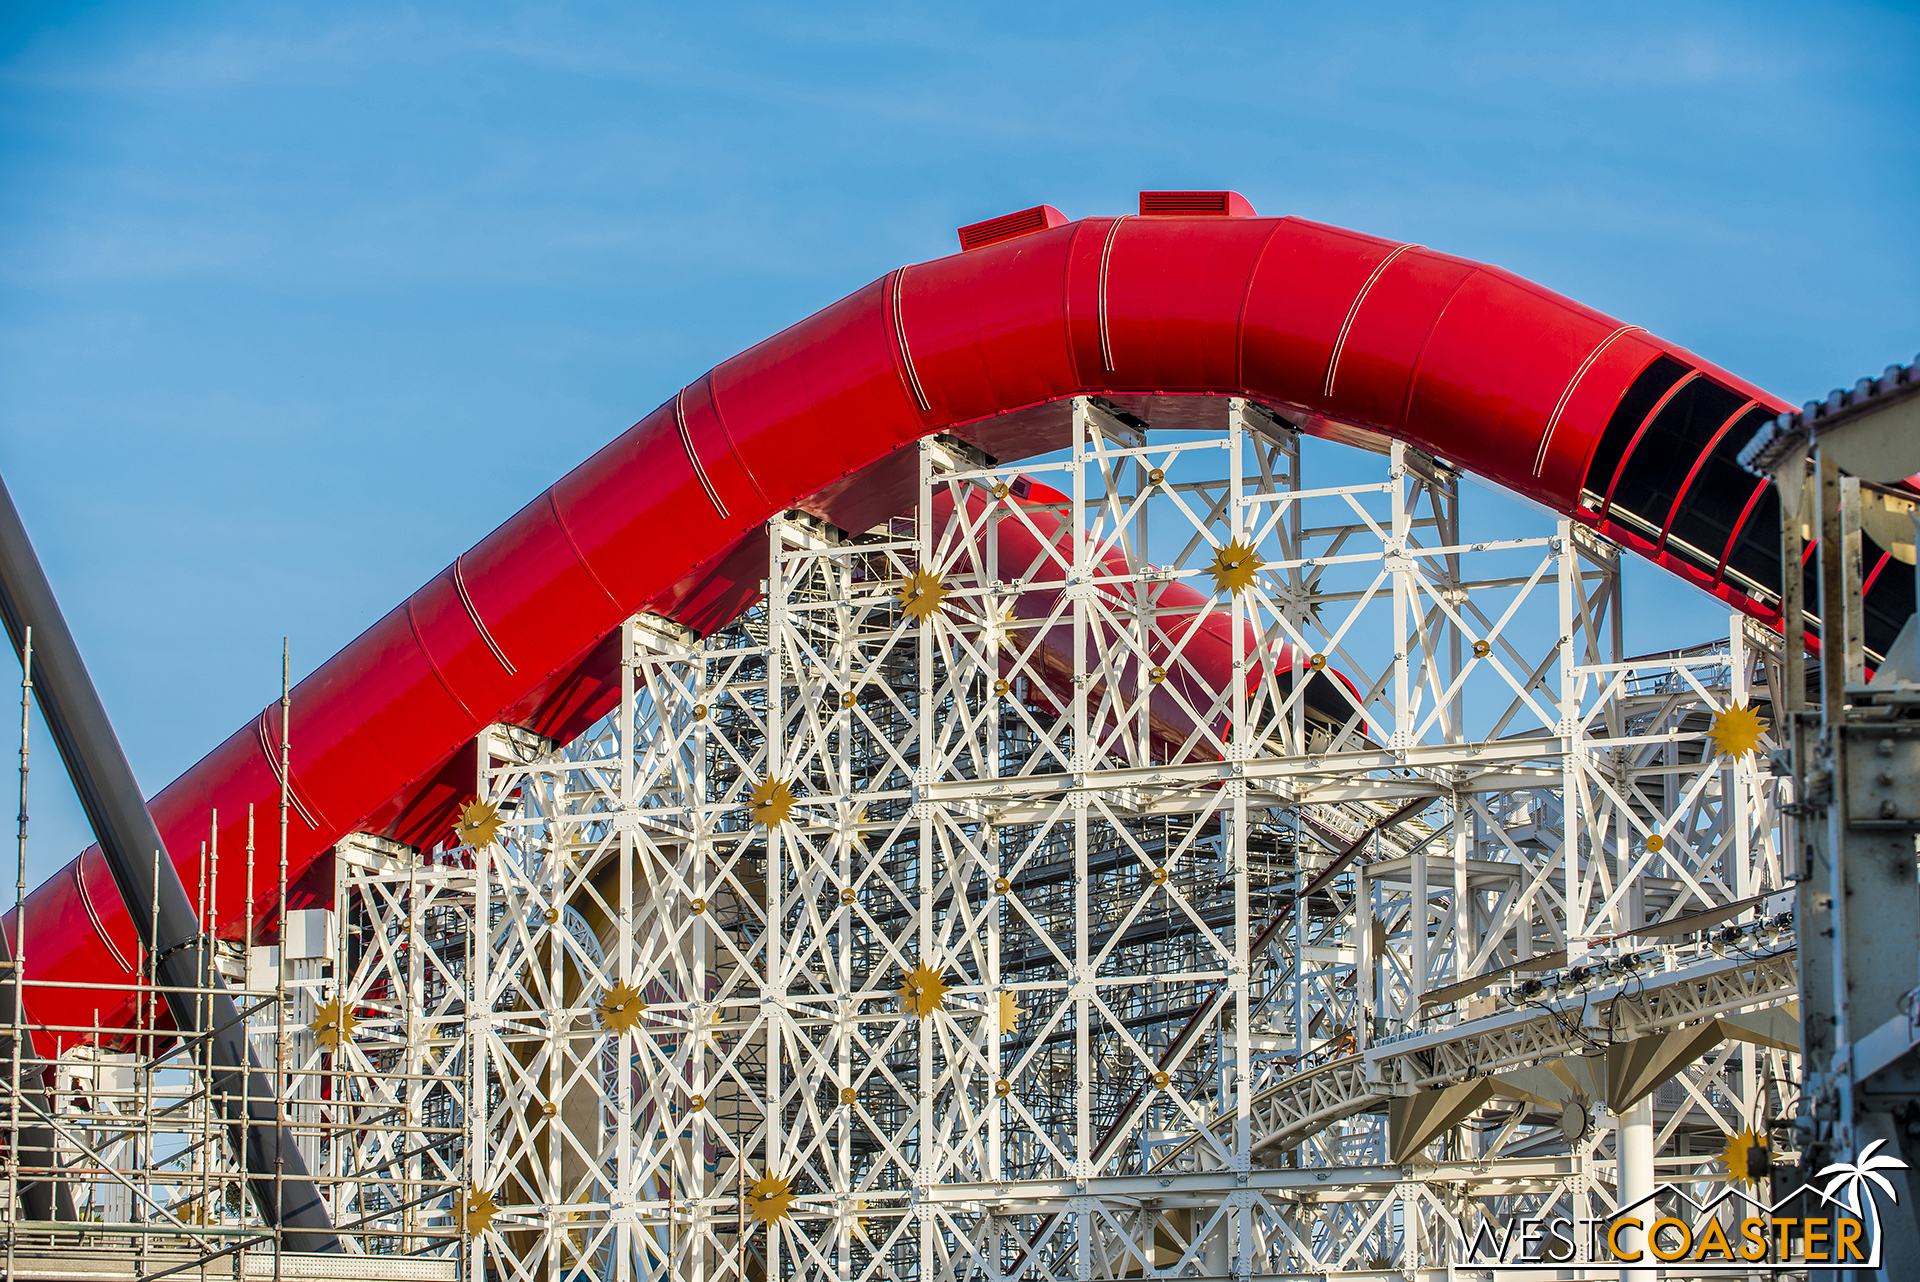 Here's the top of the mid-course lift hill.  The light band spacing gets unequal at the apex.